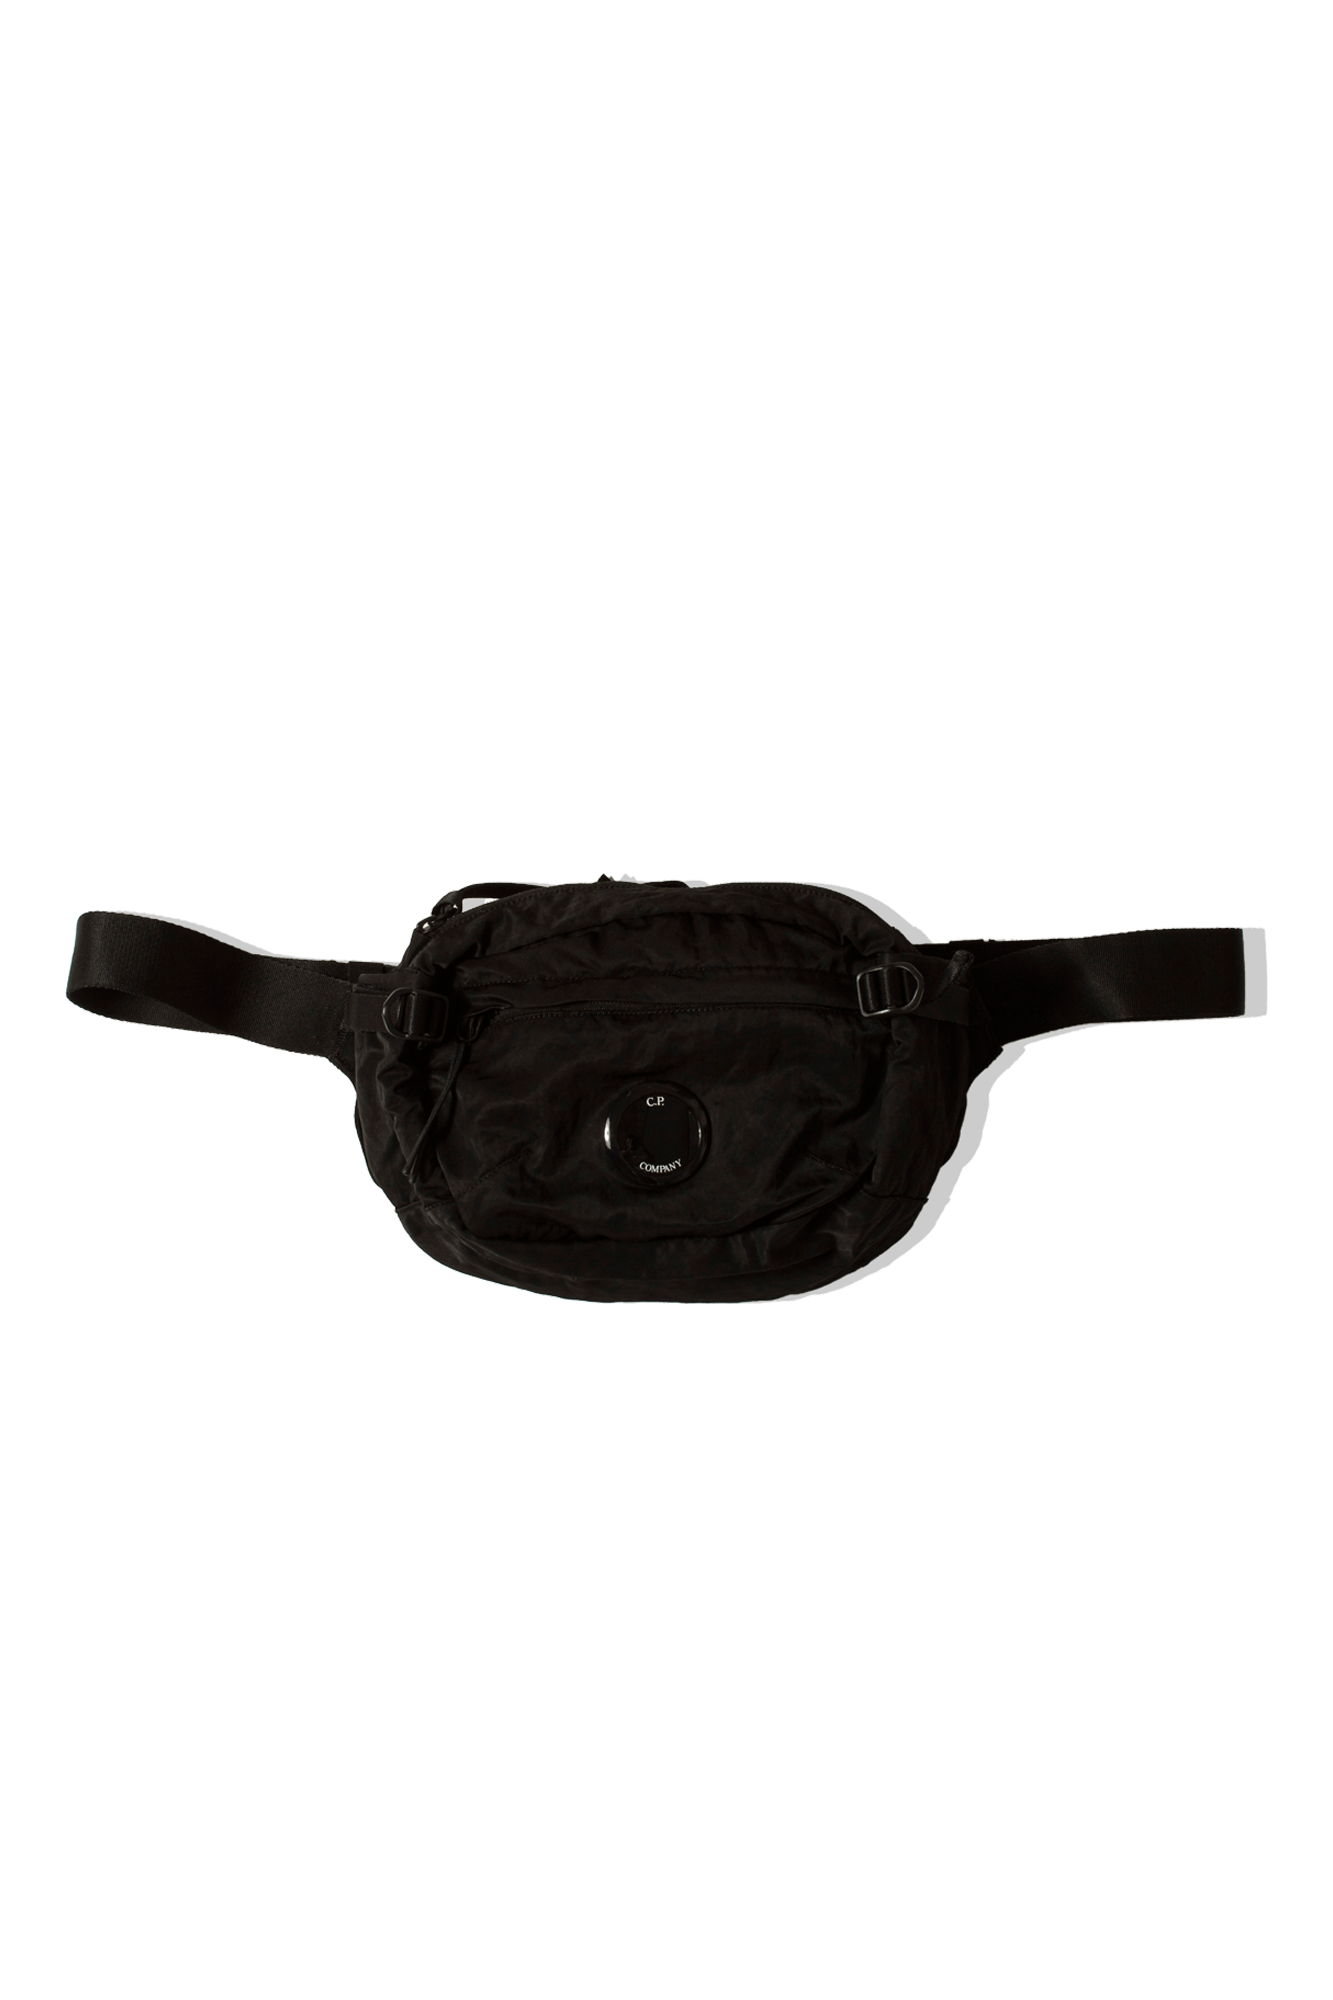 Nylon B GD Crossbody Lens Waist Bag Black